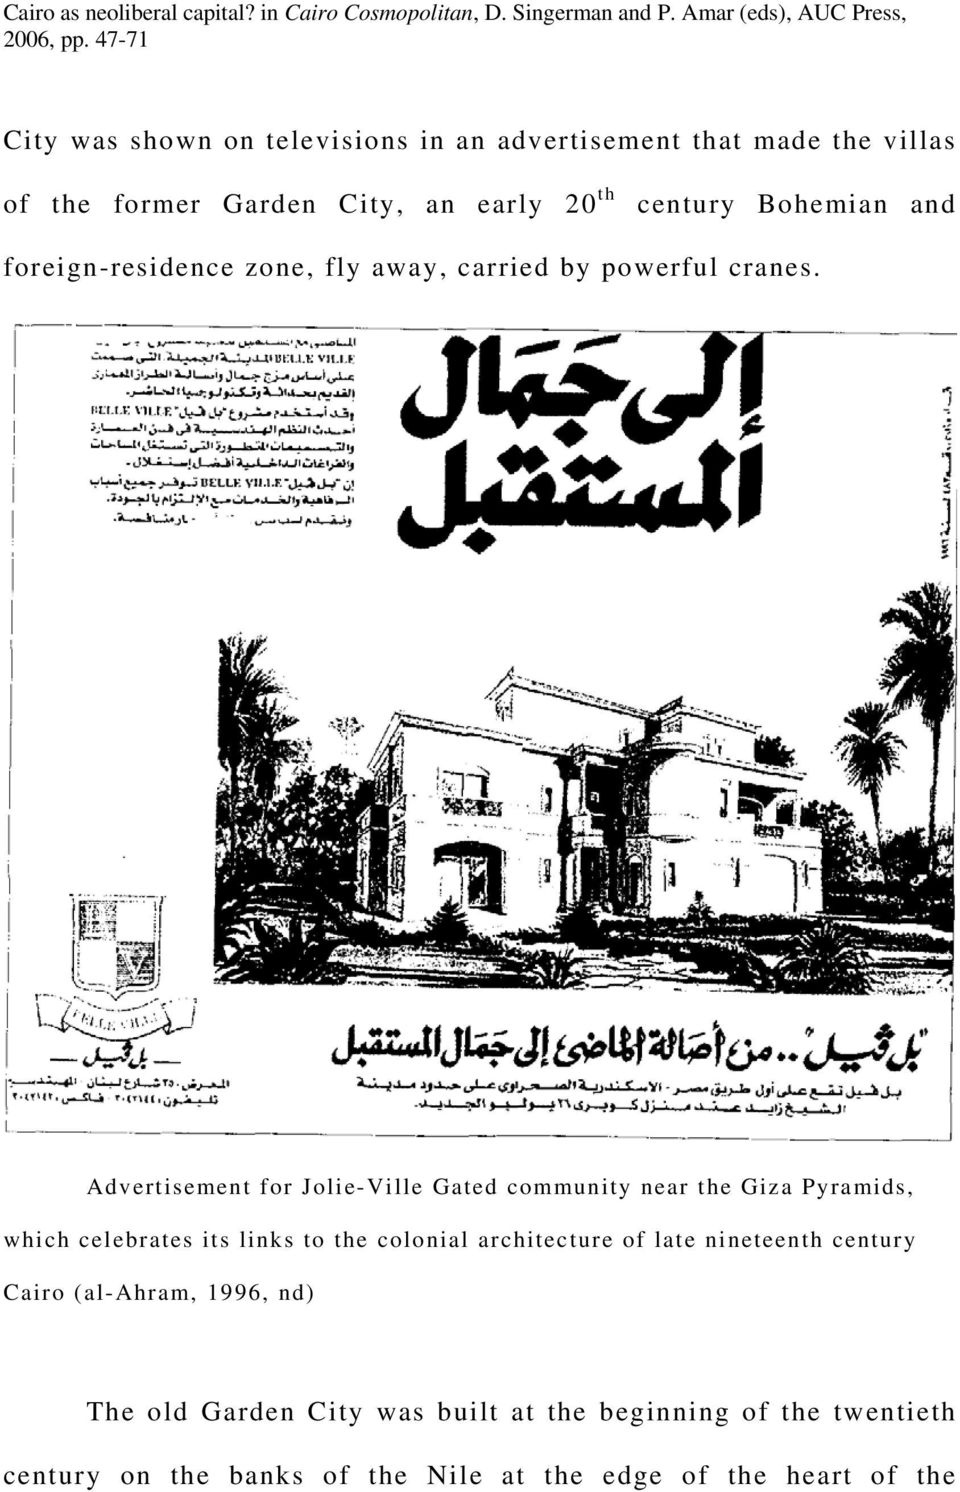 Advertisement for Jolie-Ville Gated community near the Giza Pyramids, which celebrates its links to the colonial architecture